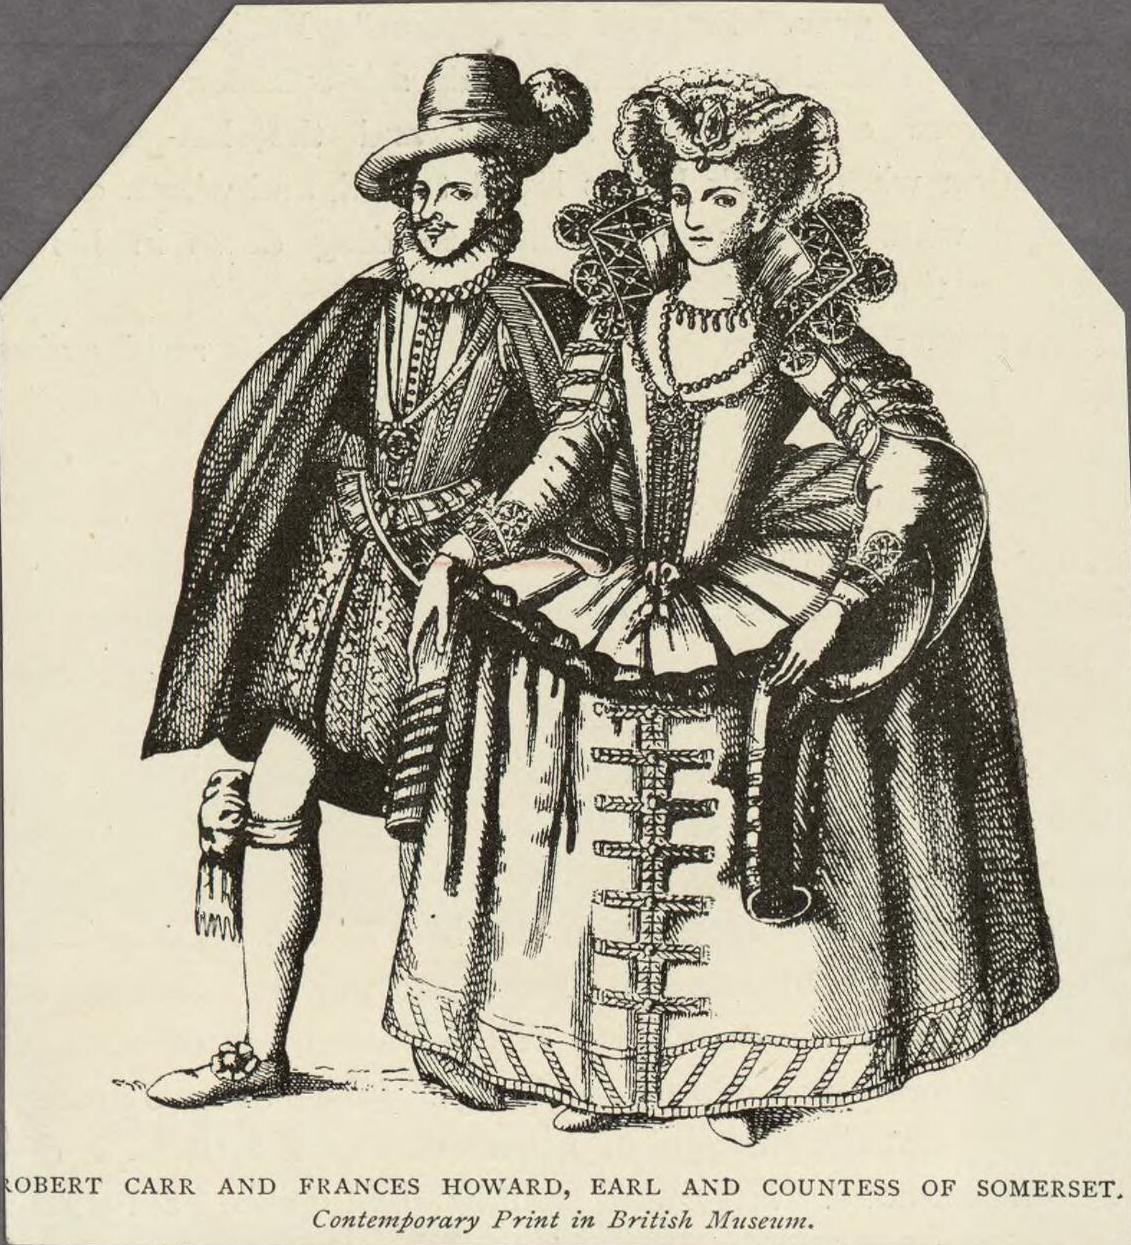 Robert Carr and Frances Howard